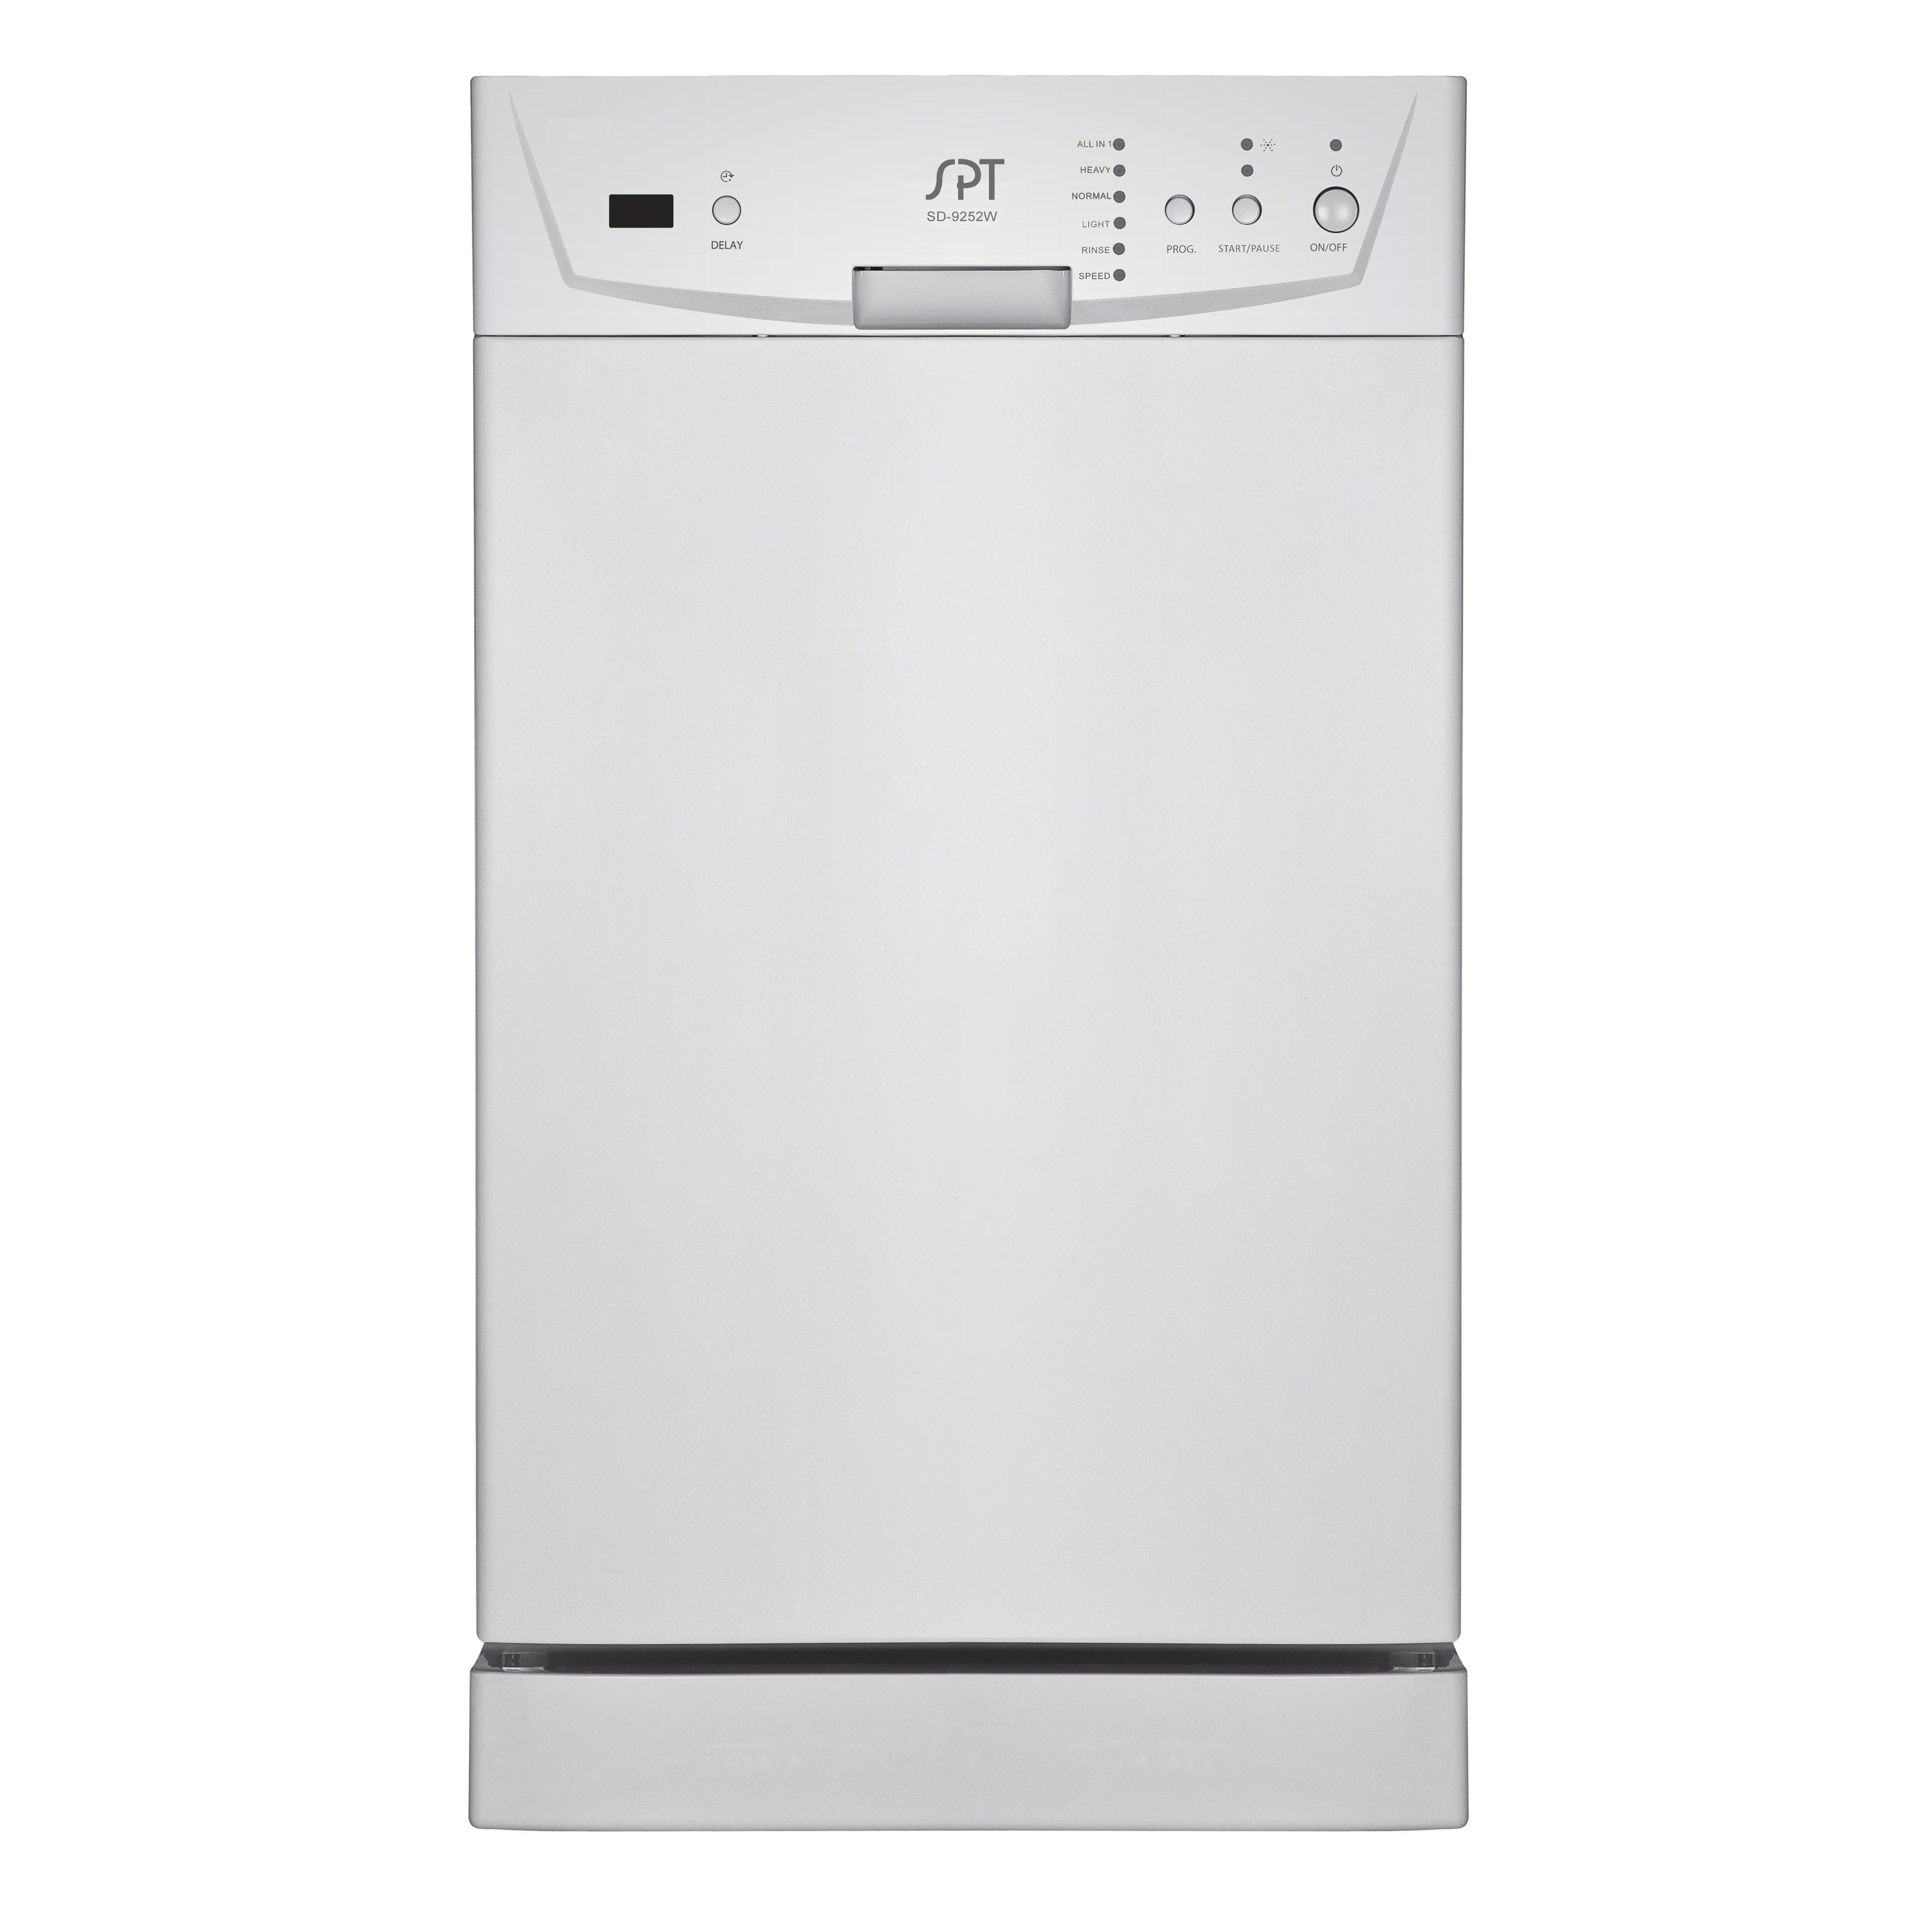 SPT Energy Star White 18 Inch Built In Dishwasher   Free Shipping Today    Overstock   17256944